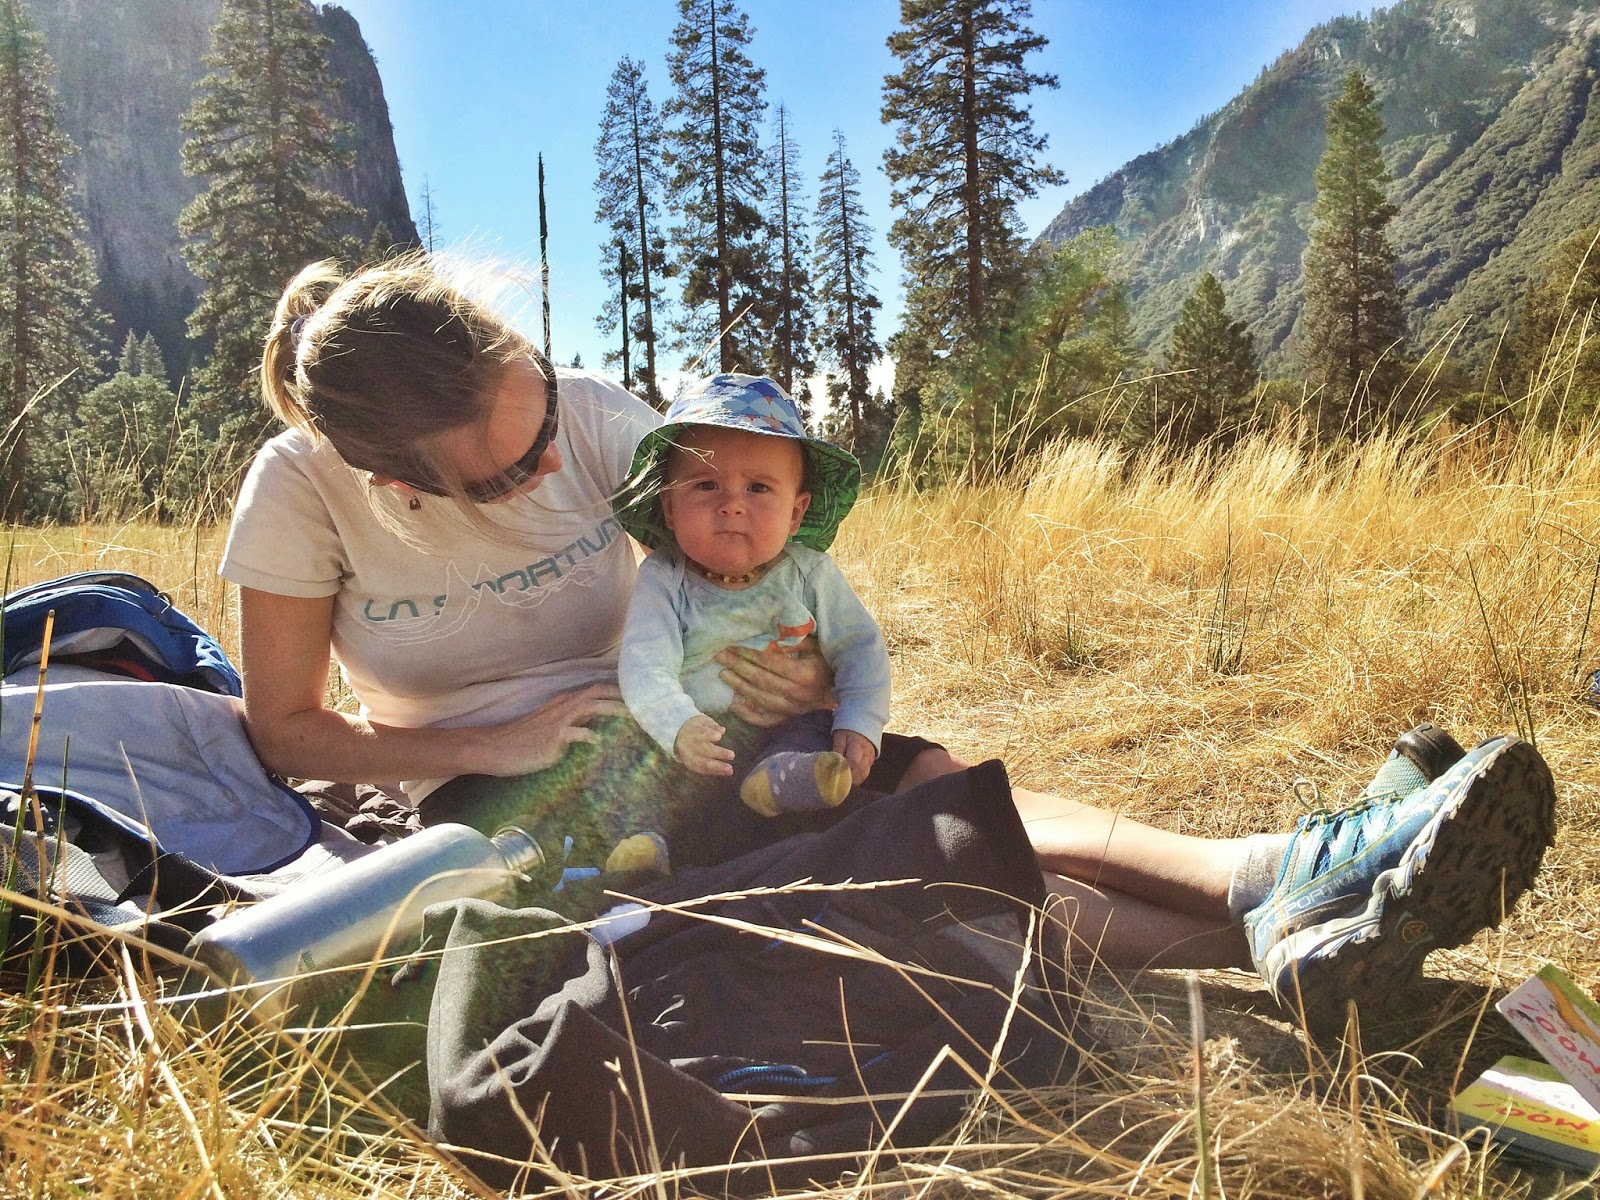 Climbing With Kids: Beth Rodden Gets Back On The Rock In Yosemite